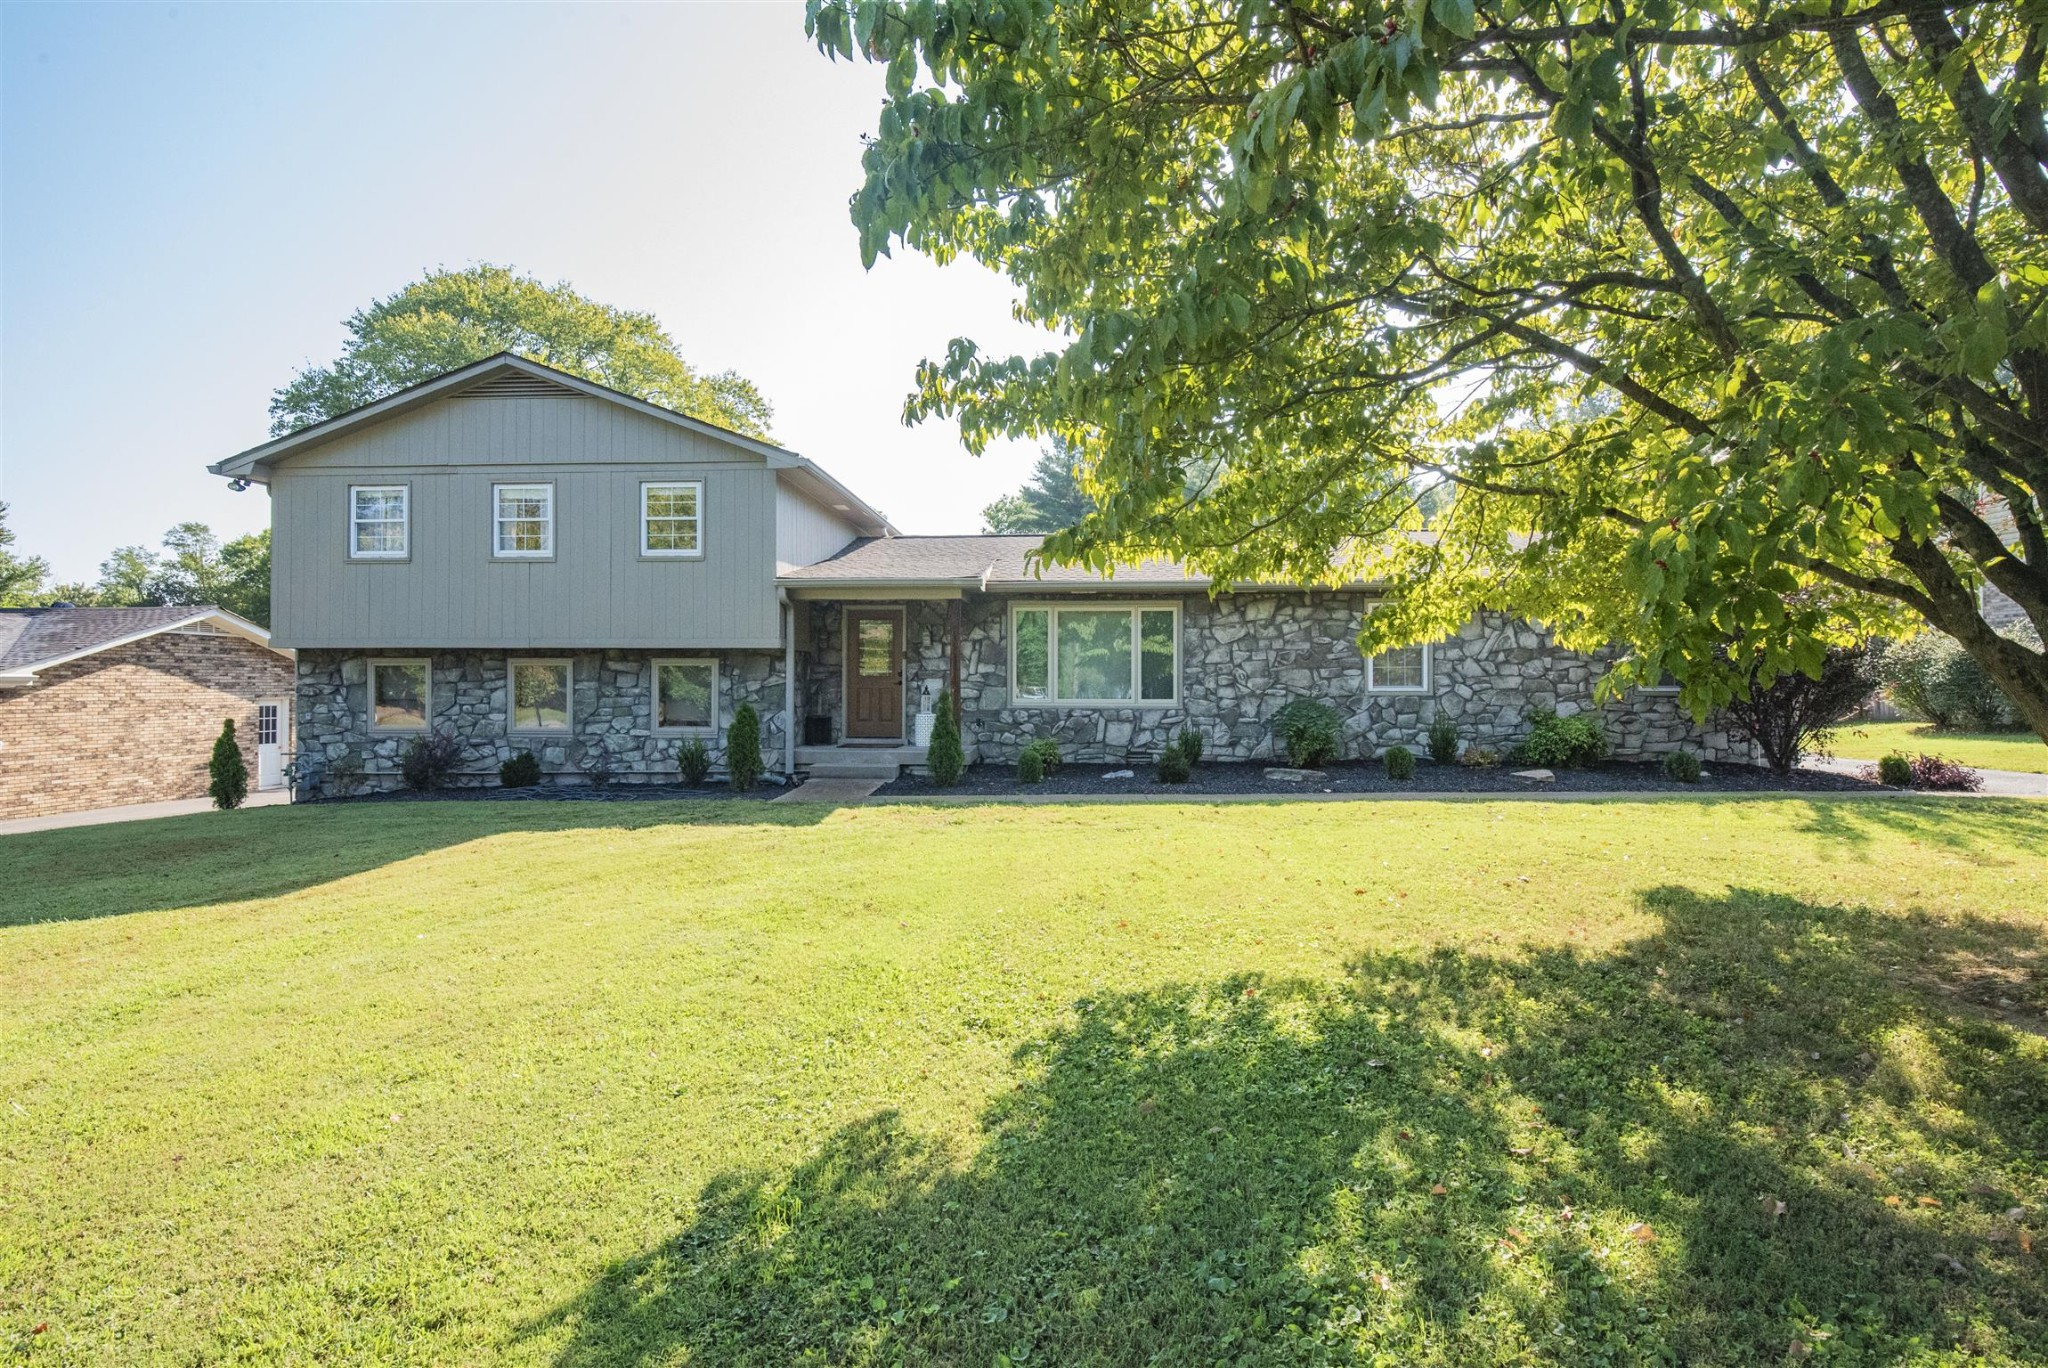 226 Green Harbor Rd, Old Hickory, TN 37138 - Old Hickory, TN real estate listing